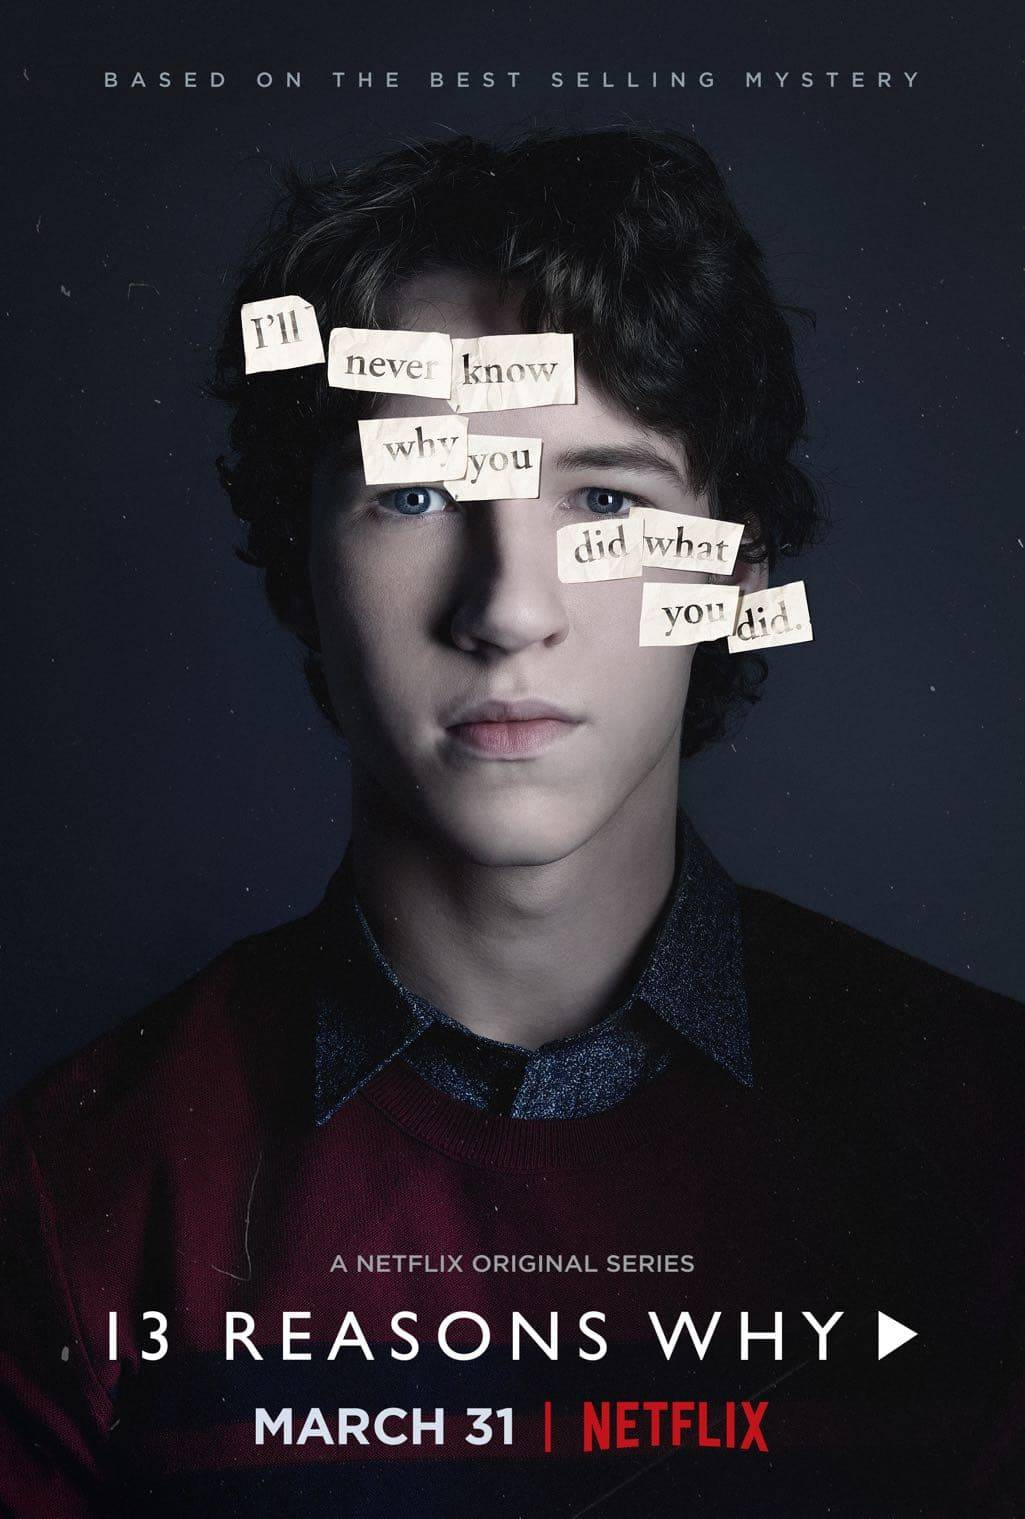 13 Reasons Why Character Poster Devin Druid as Tyler